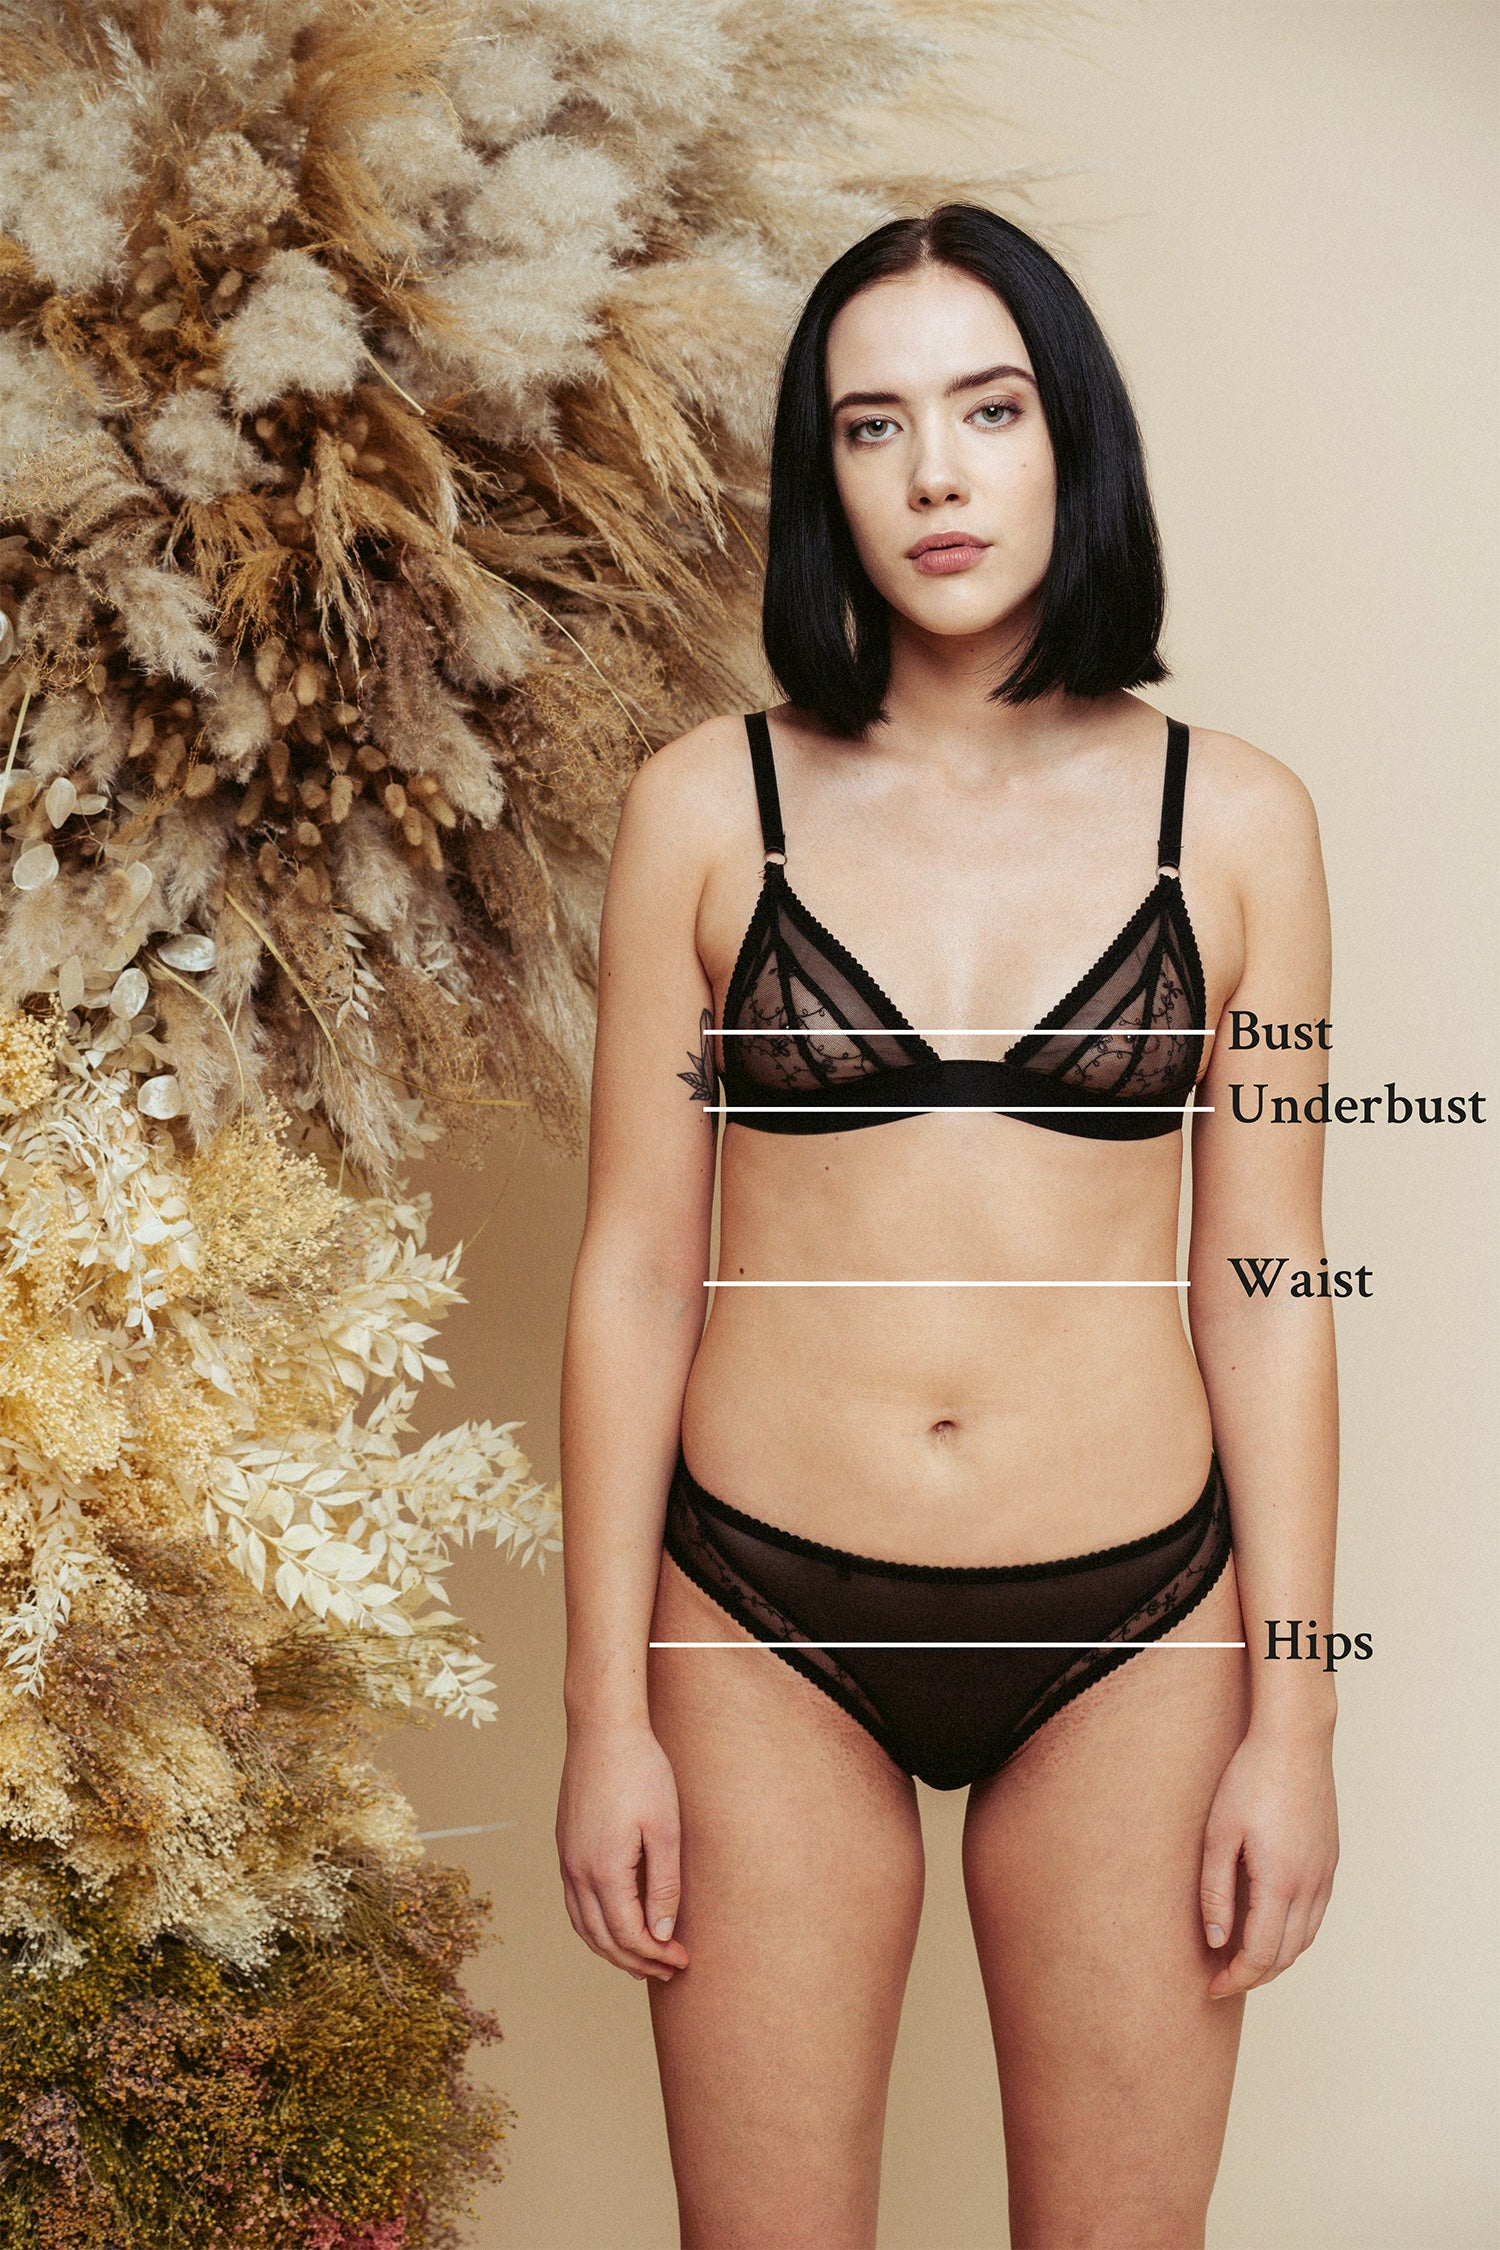 Kauf sizing reference image, model facing front and wearing black lingerie